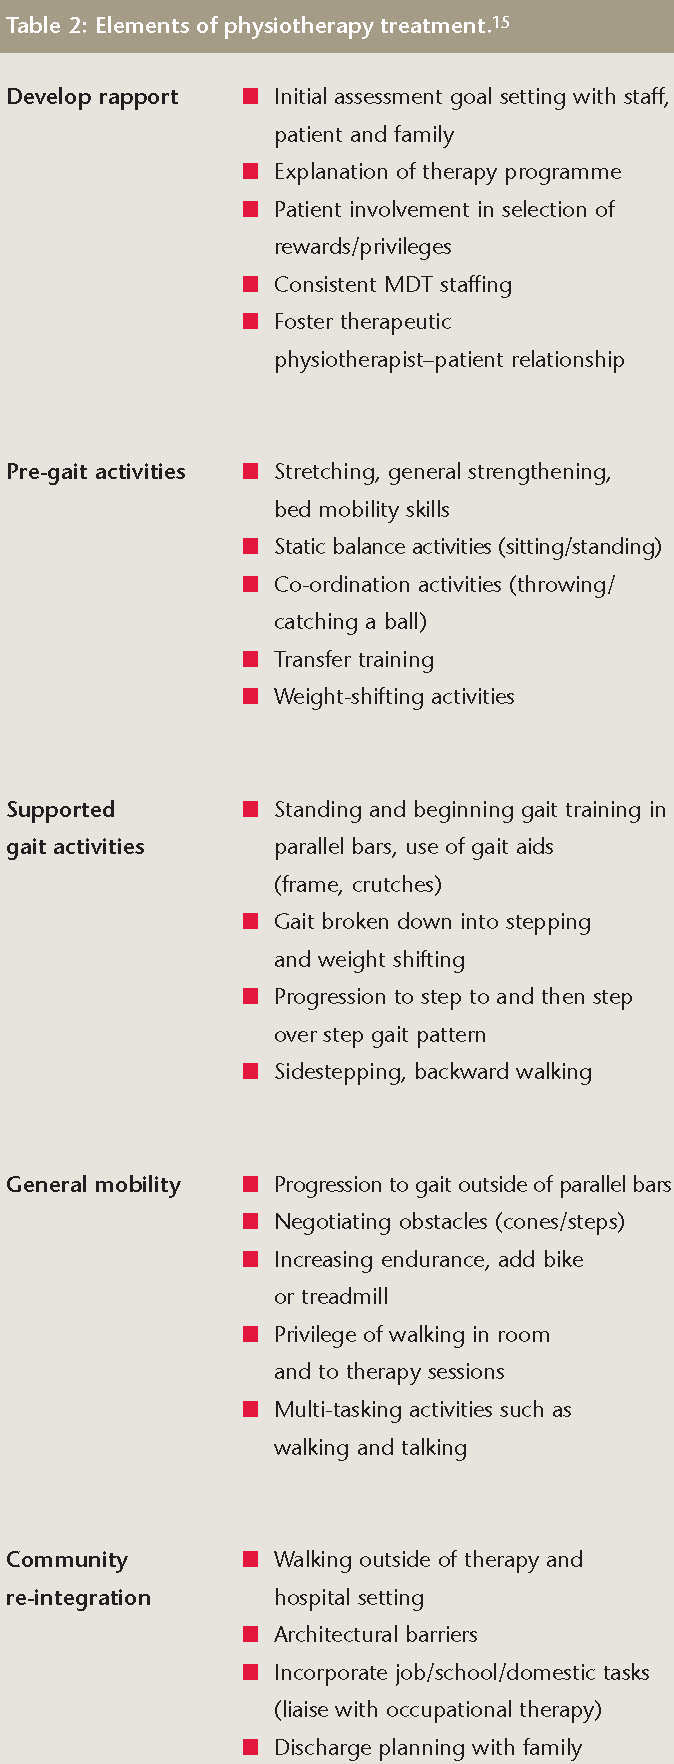 A practical approach to the physiotherapy assessment and treatment